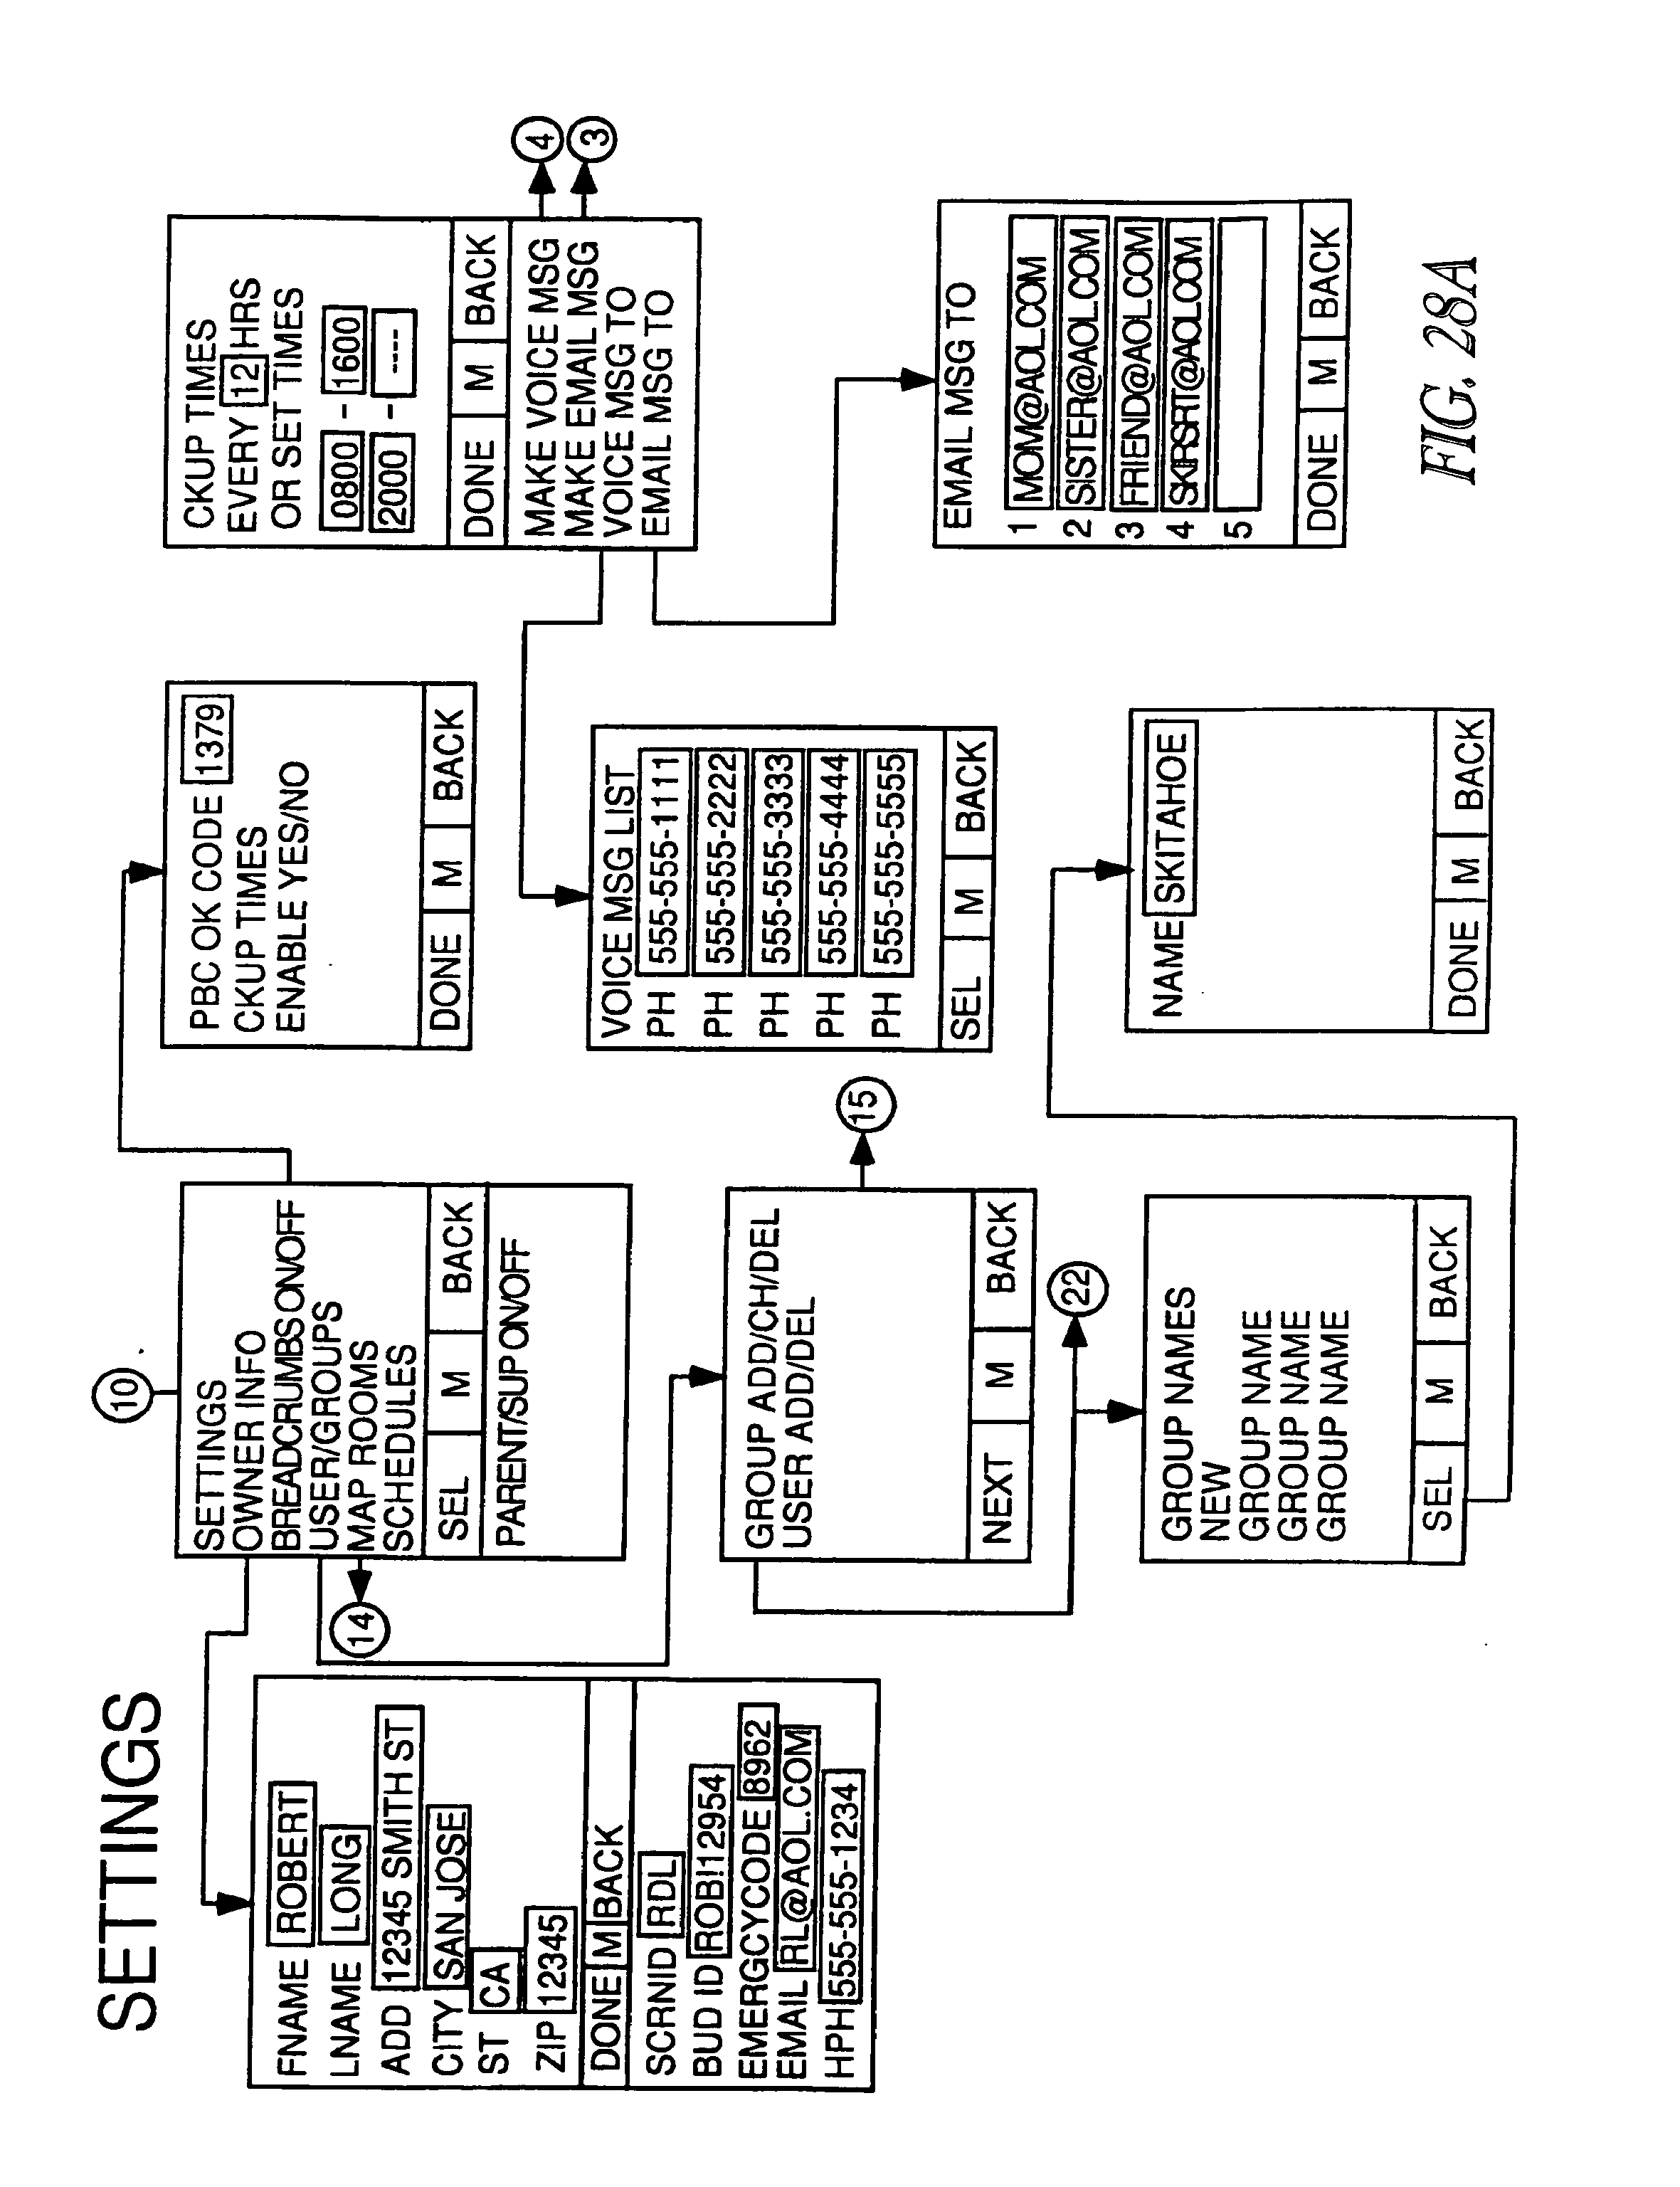 Us8385964b2 methods and apparatuses for geospatial based sharing us8385964b2 methods and apparatuses for geospatial based sharing of information by multiple devices google patents fandeluxe Gallery